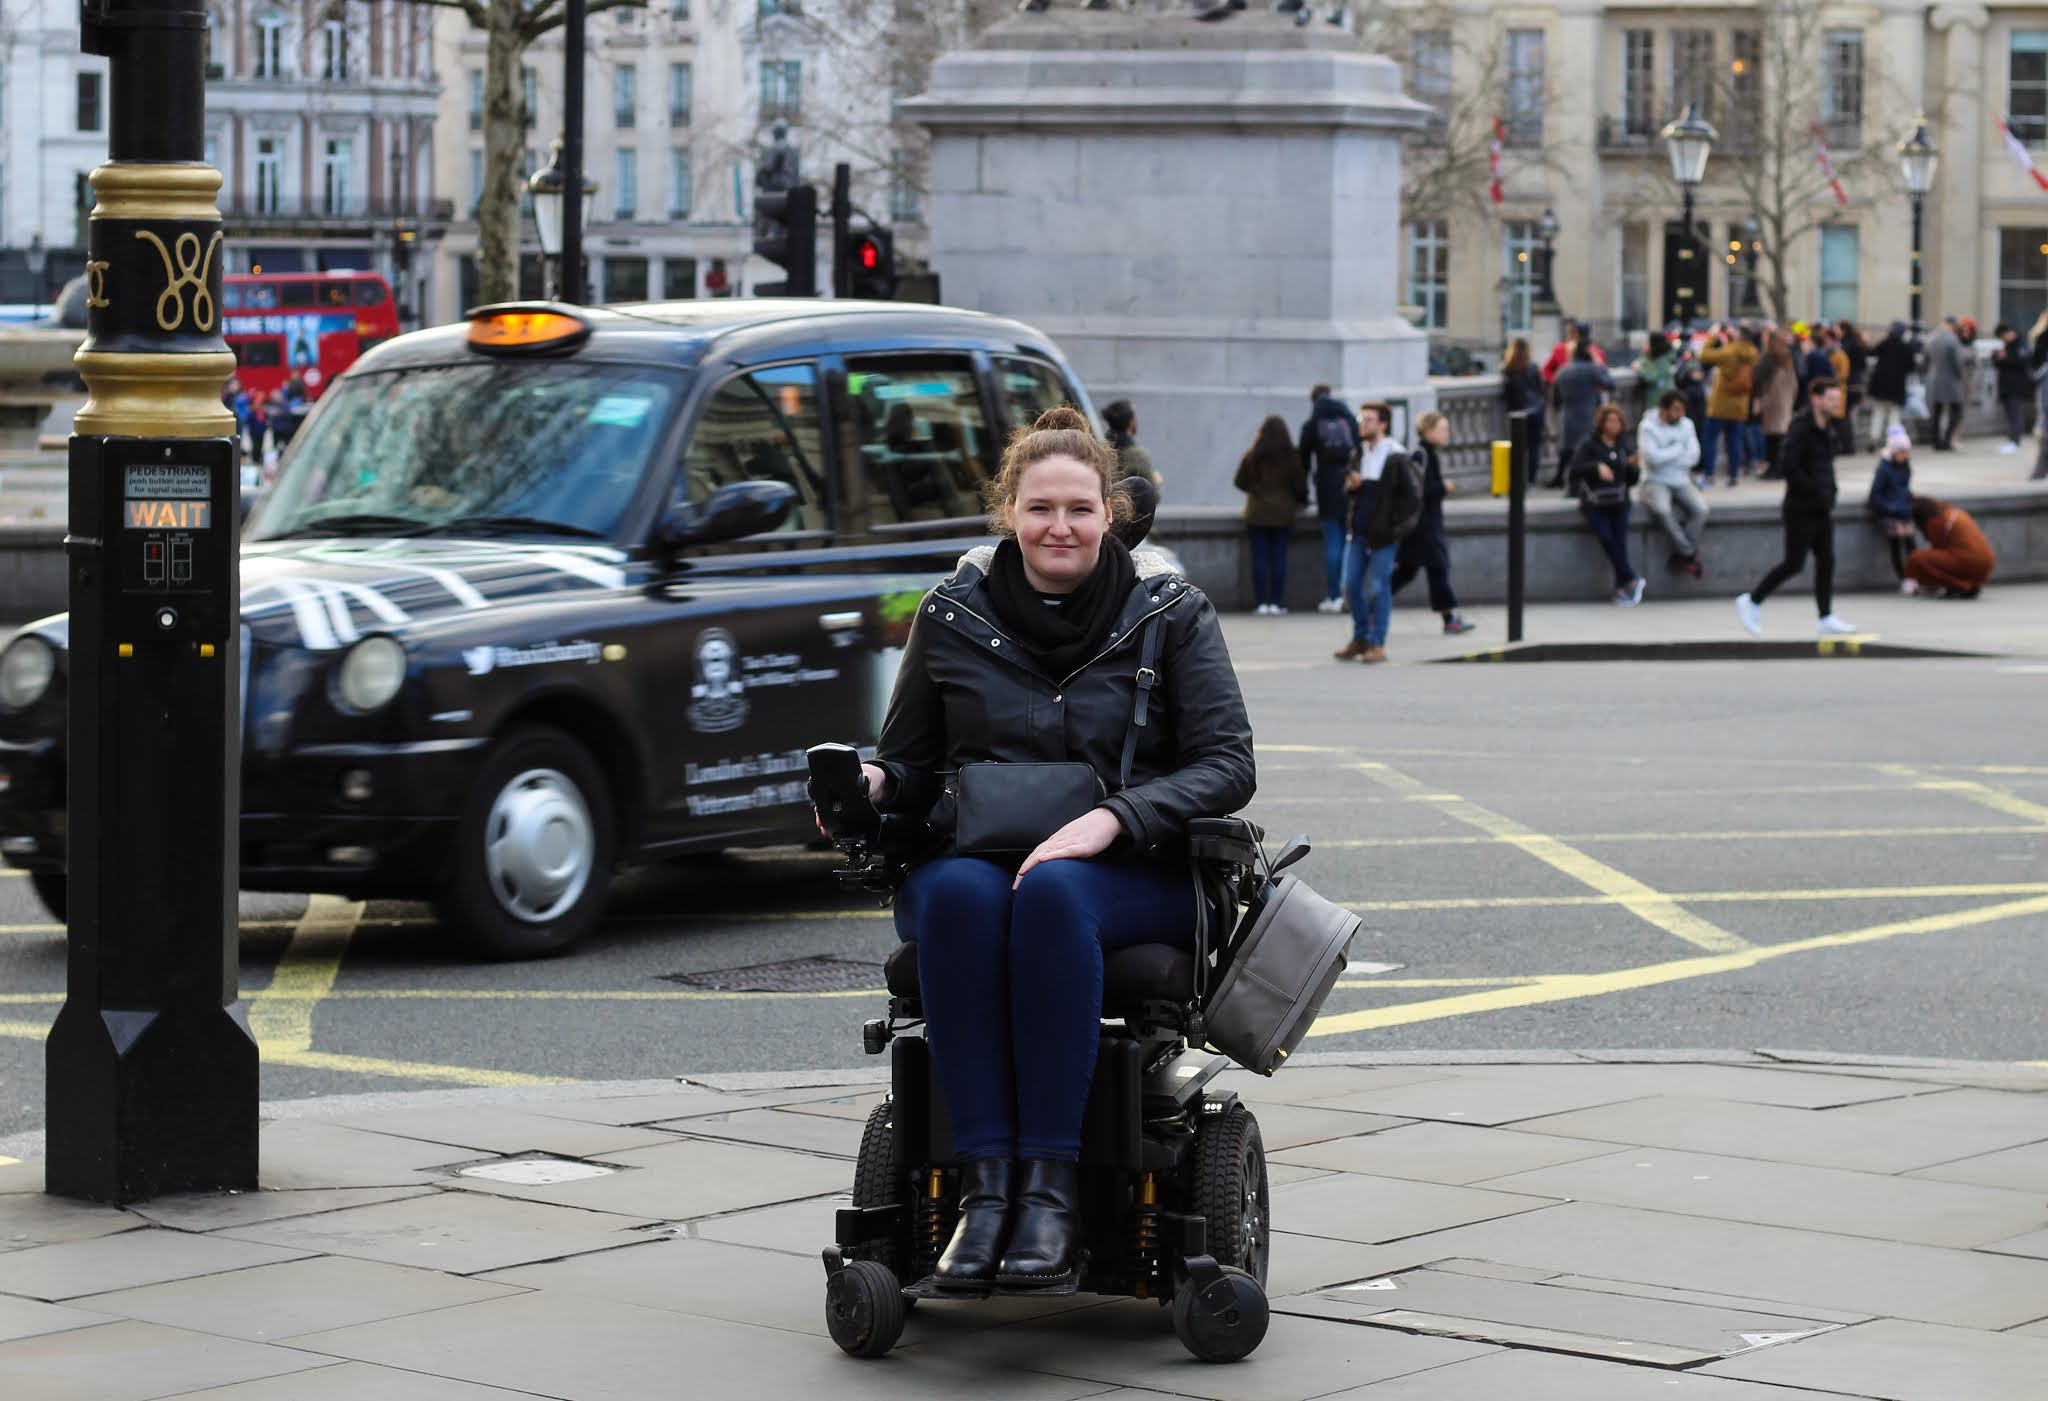 Shona, a young woman with auburn hair tied back is sitting in her powerchair. She is wearing navy jeans, black boots, a black coat and has a grey bag hanging off one of her armrests. She is in the middle of a busy London area, by Trafalgar Square. Red buses and black taxis can be seen behind her.